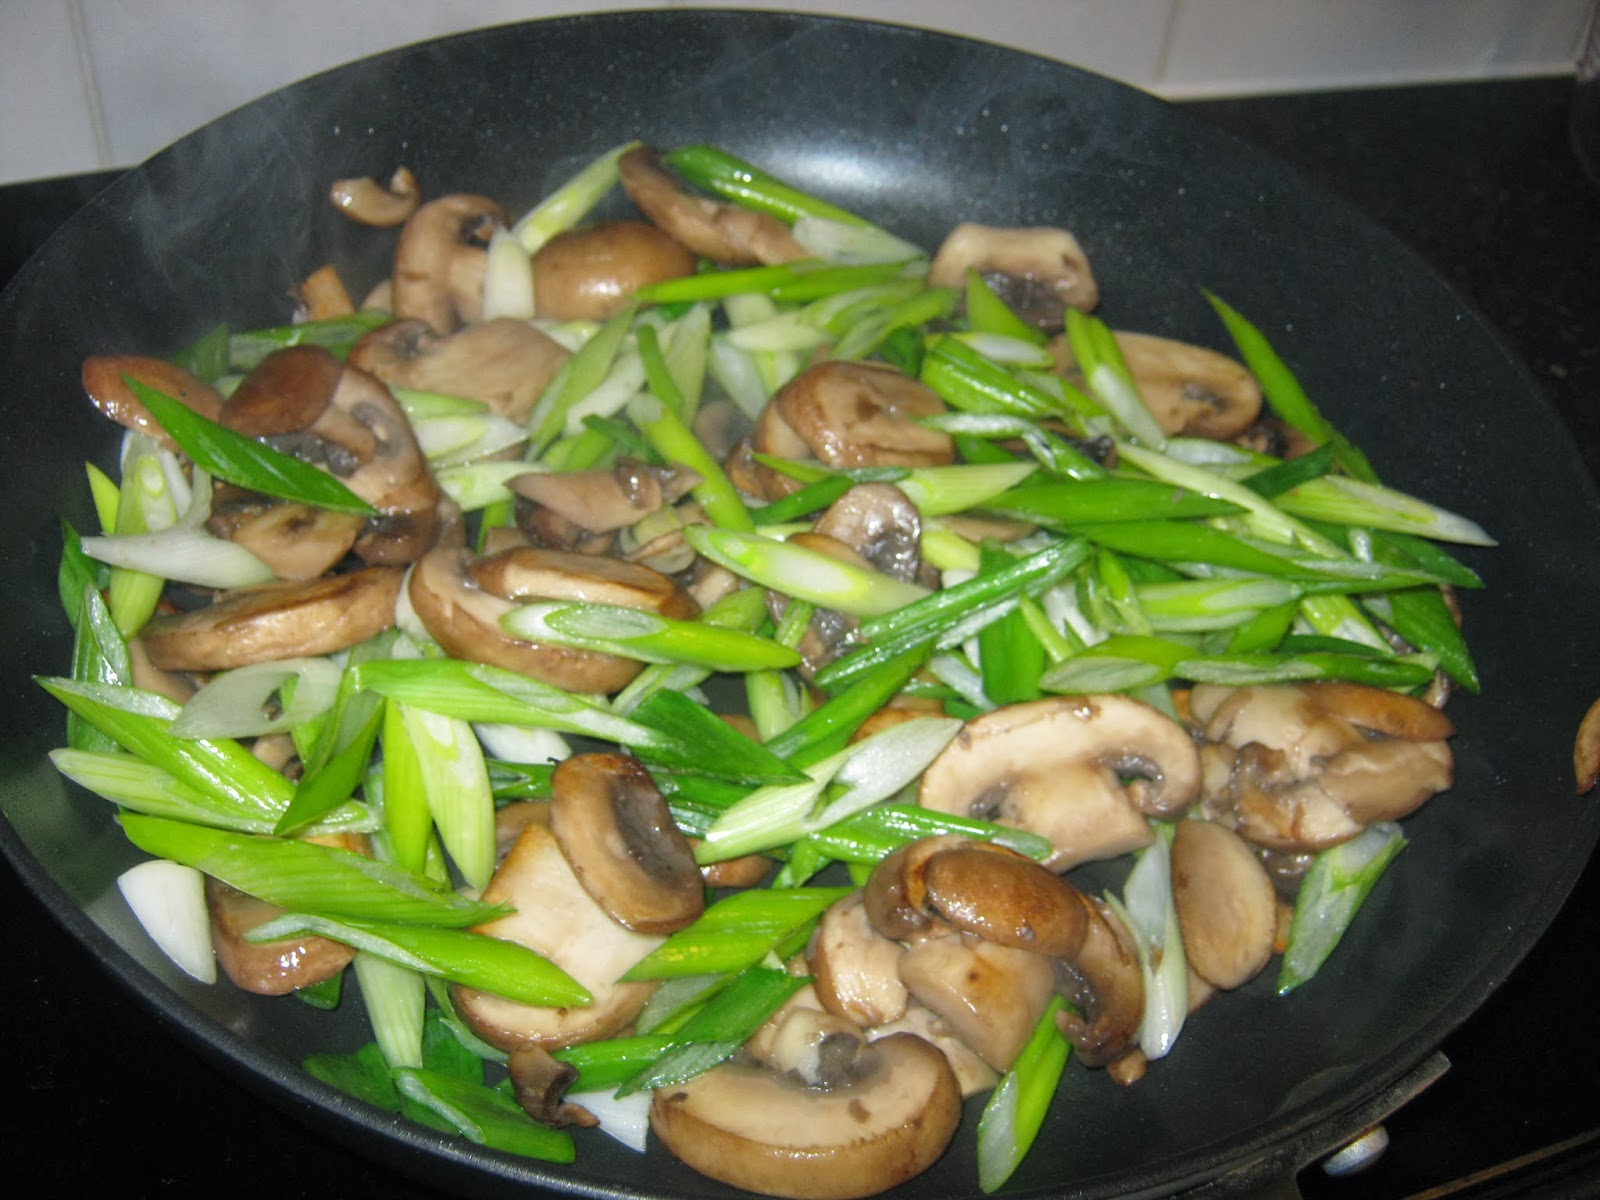 Mushrooms and spring onions being fried